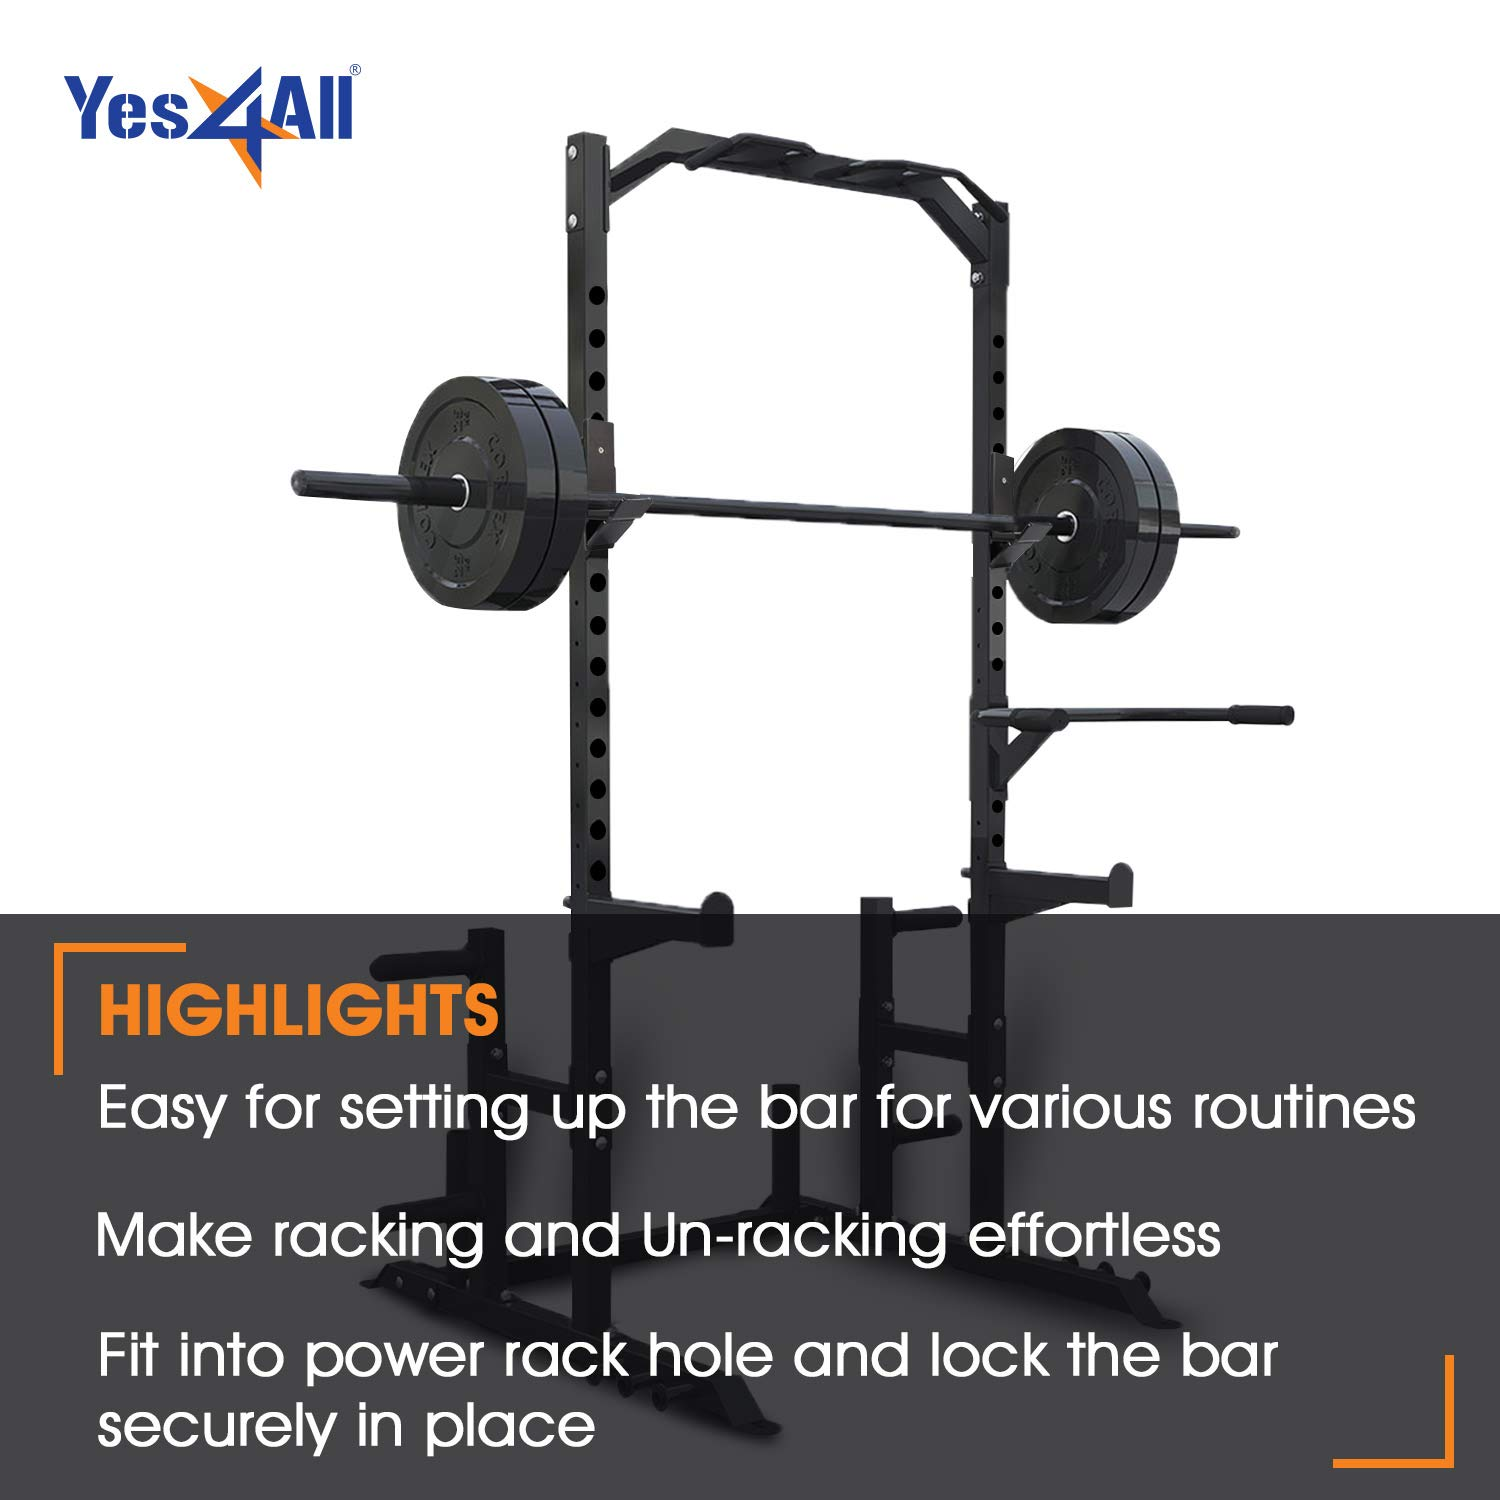 Yes4All J-Hooks Barbell Holder for Power Rack - Fit 2x2, 2x3, 3x3 Square Tube (Pair) (Black - J-Hook 3x3) by Yes4All (Image #6)